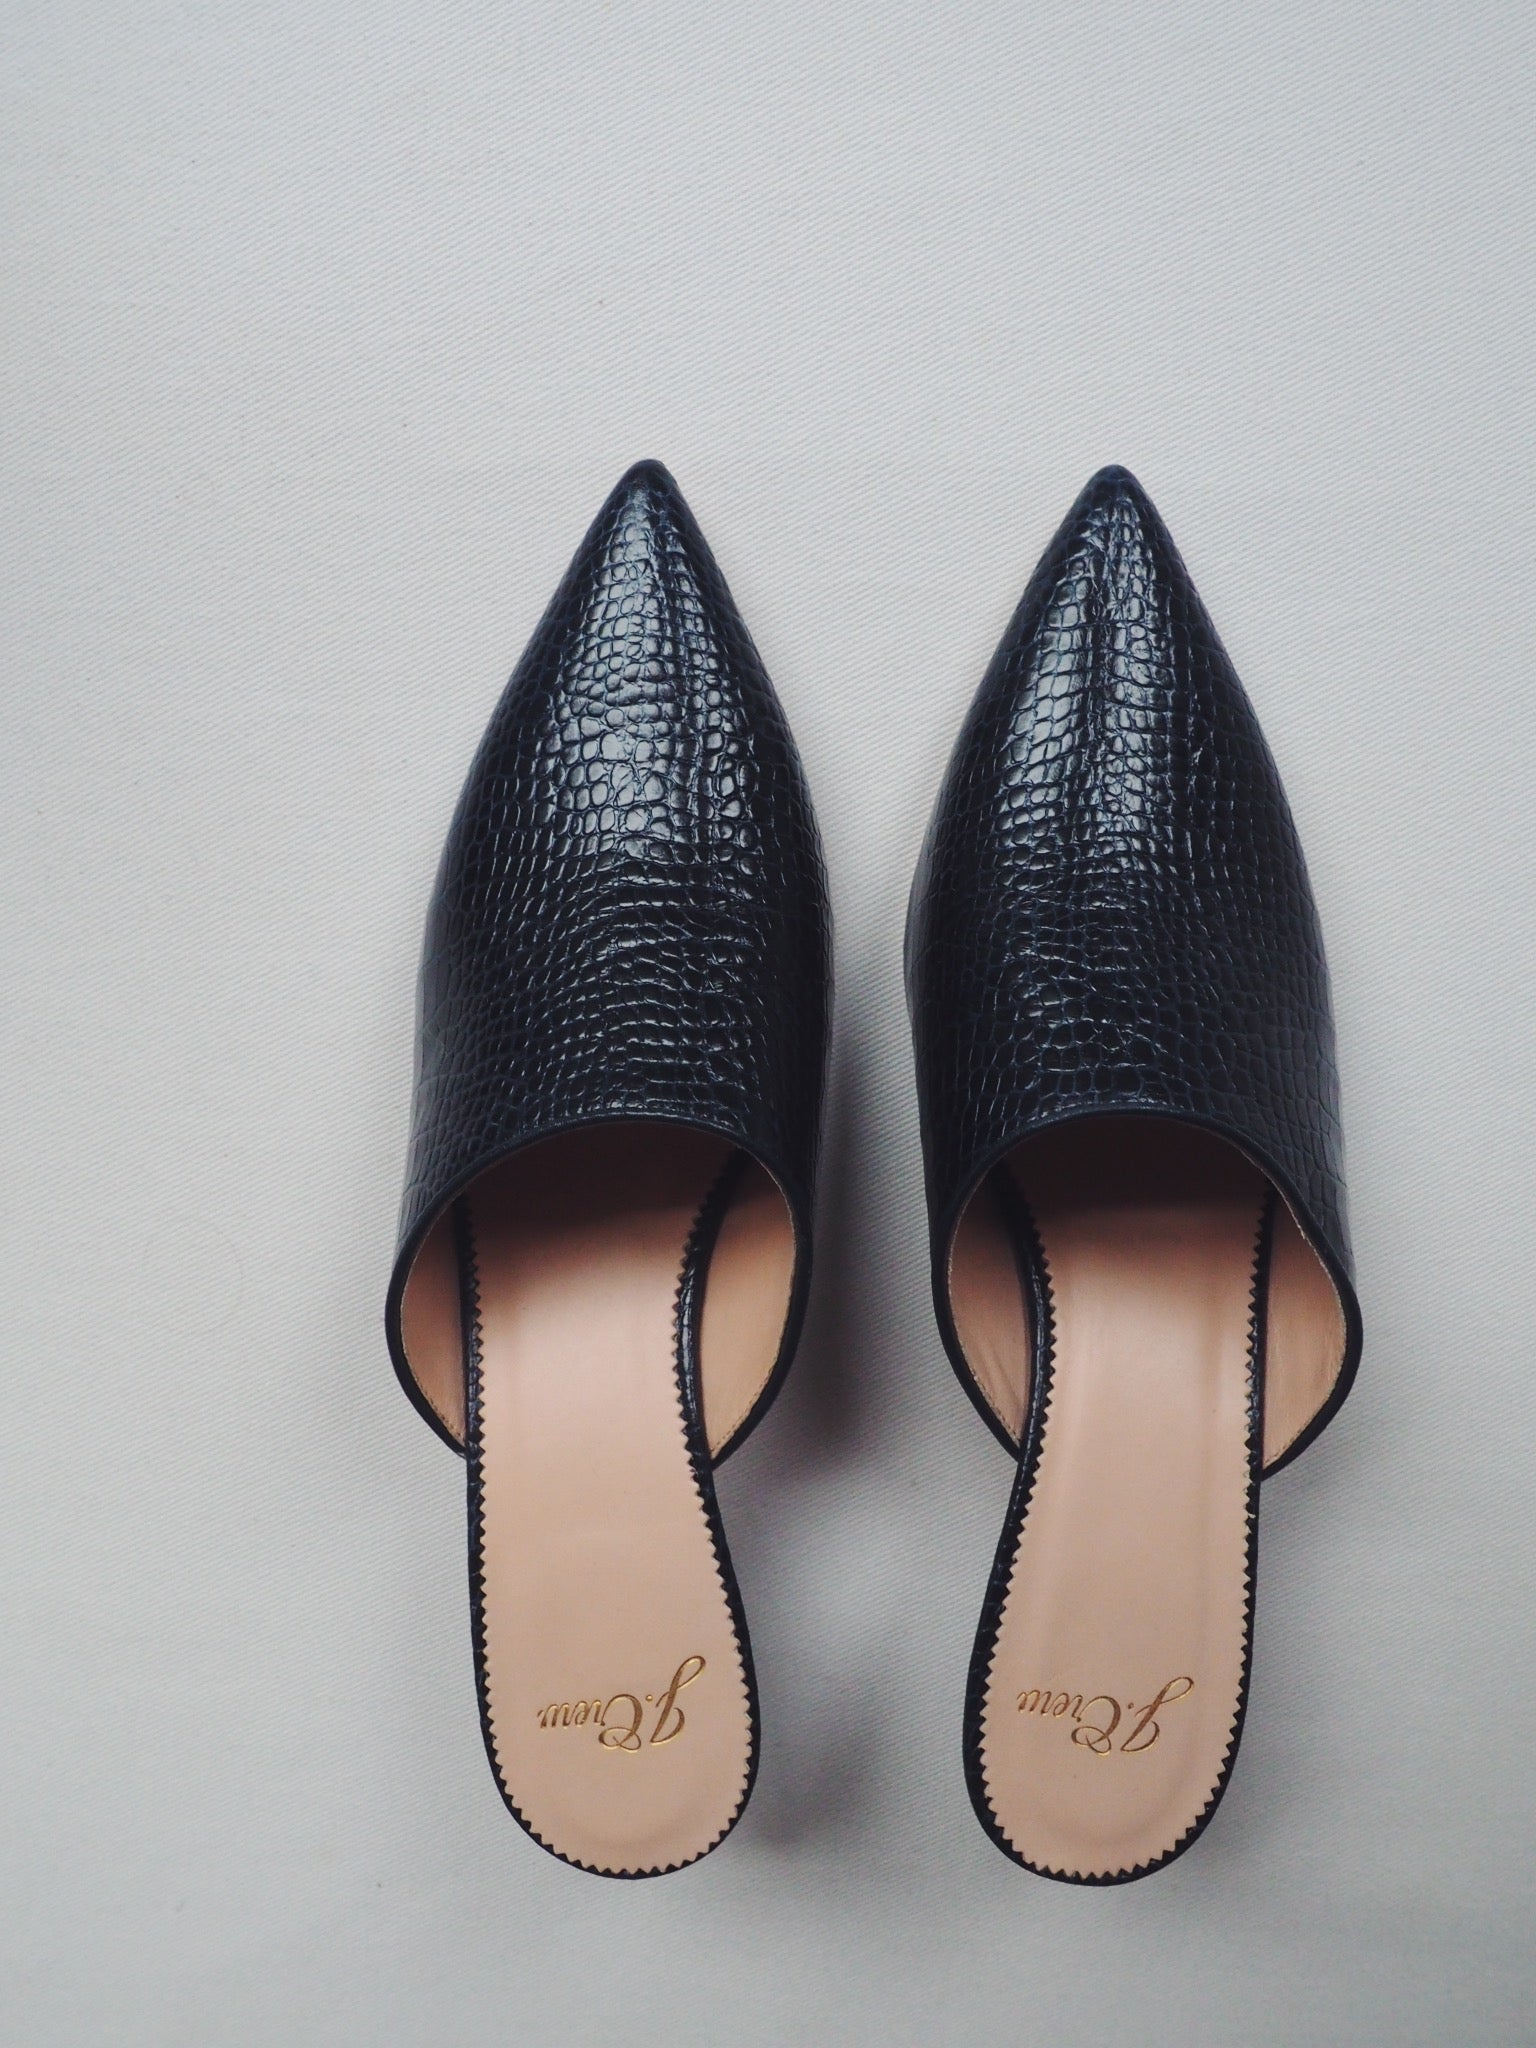 J.Crew Alligator Mules